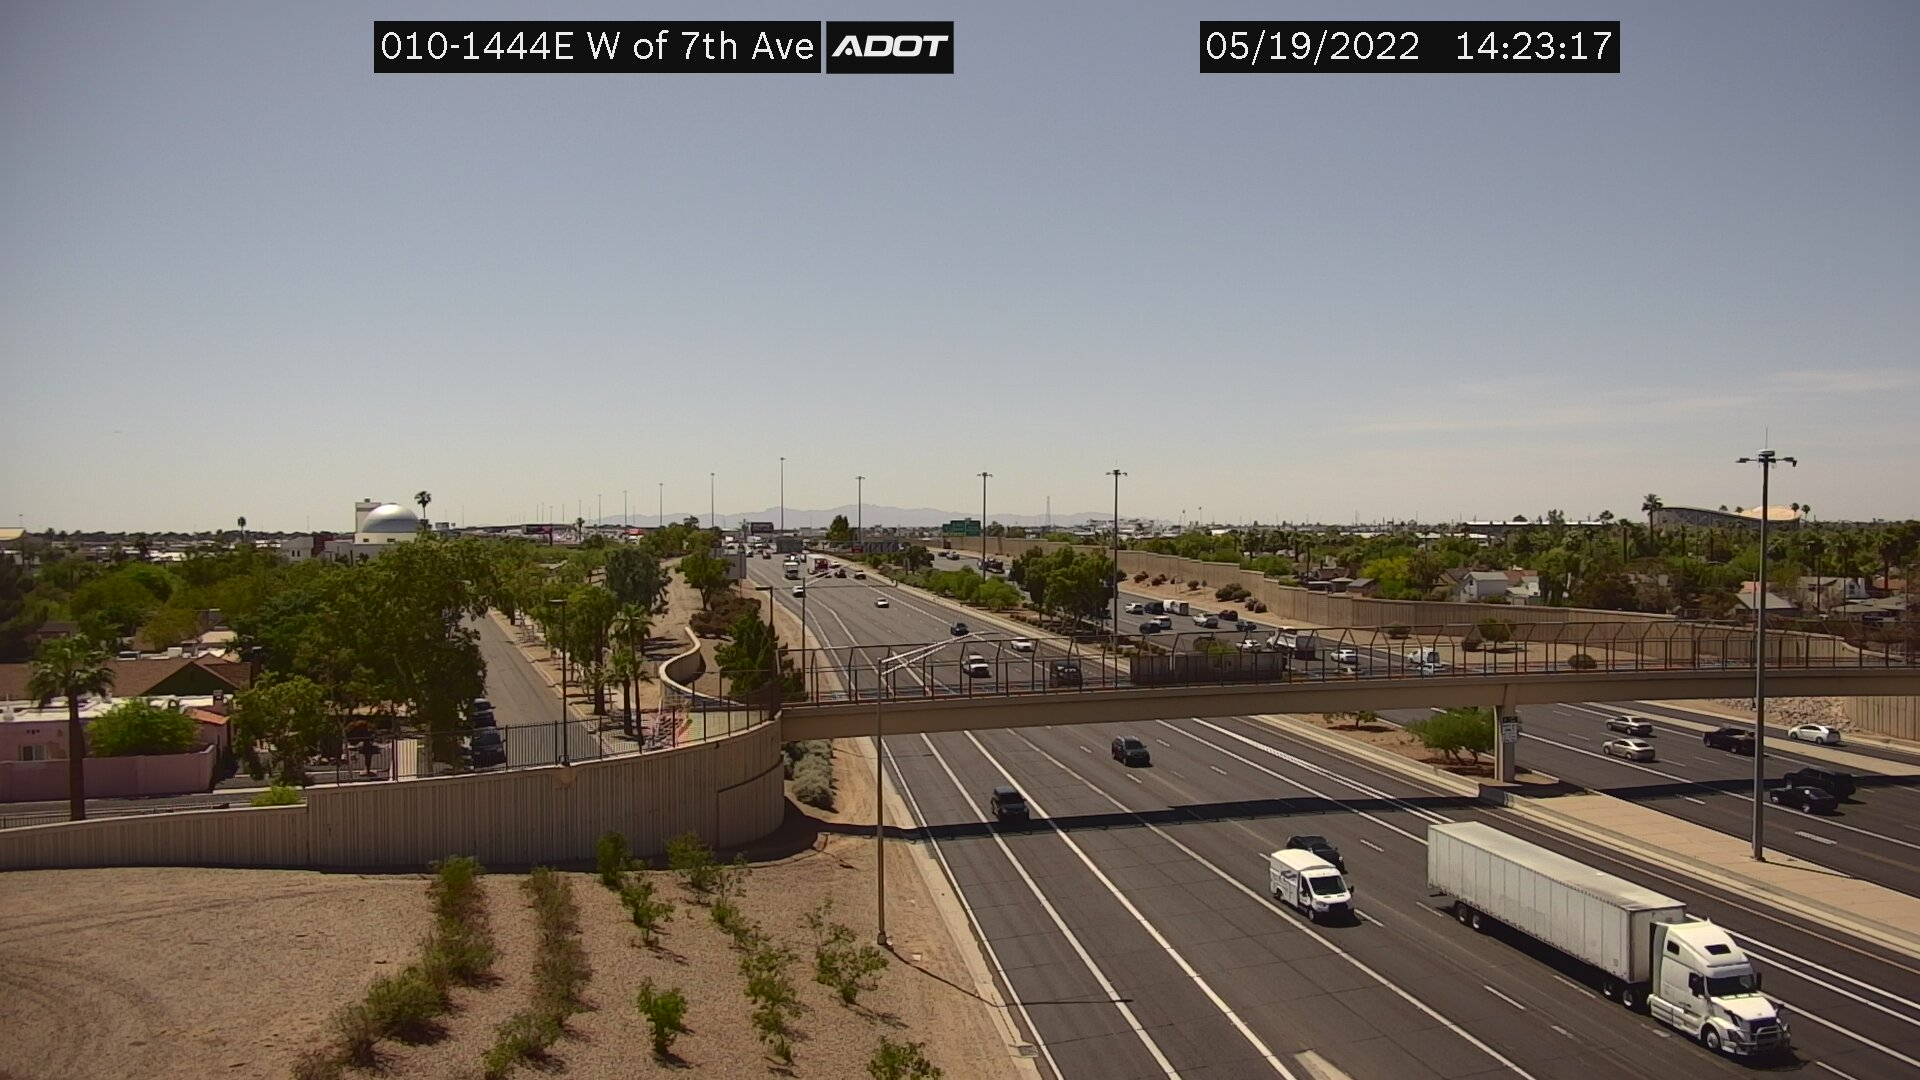 W of 7th Ave EB (I10) (011) - Phoenix and Arizona